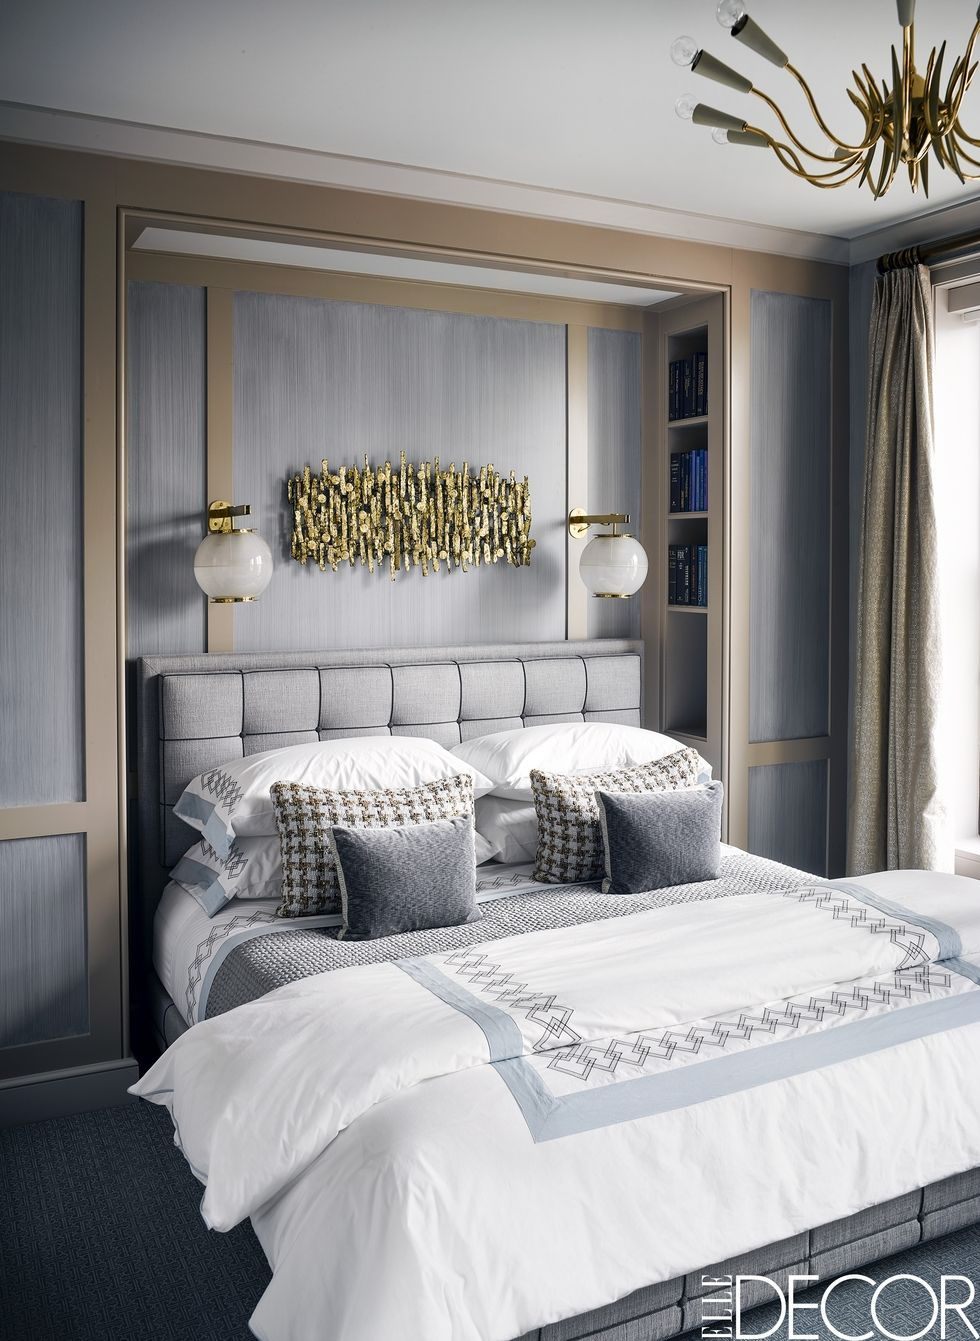 50 small bedroom design ideas decorating tips for small bedrooms rh elledecor com bedroom decor ideas 2019 bedroom decor ideas images